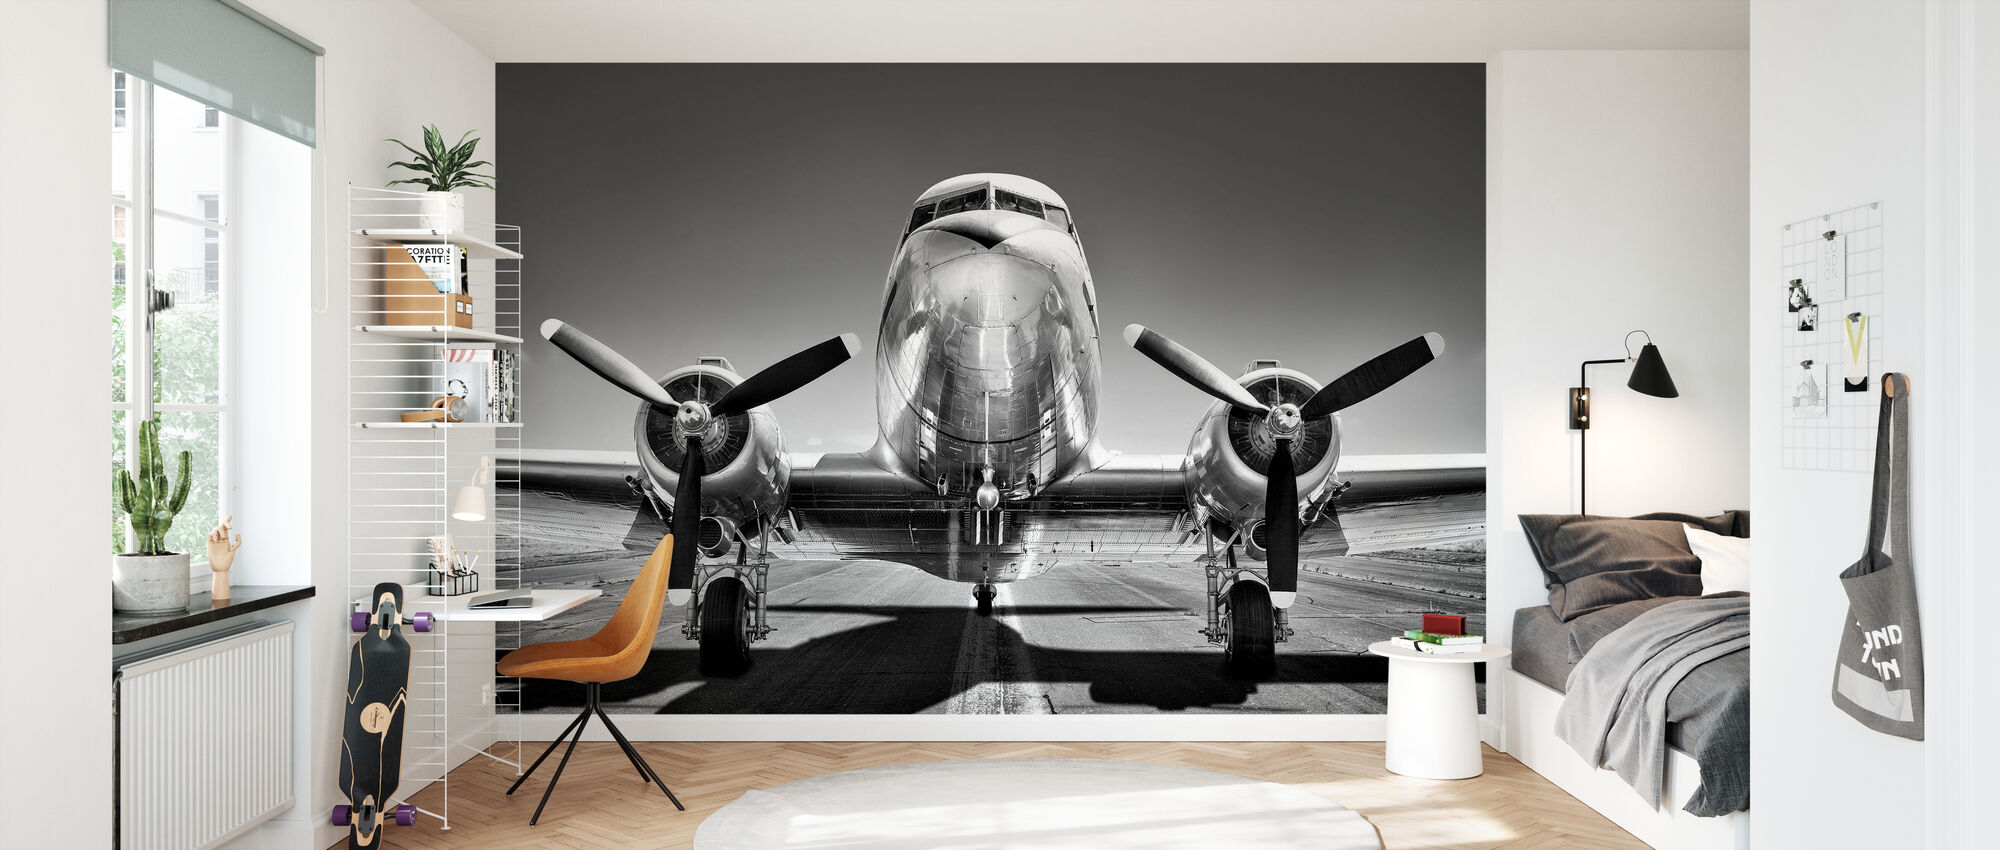 Vintage Airplane on a Runway, black and white - Wallpaper - Kids Room